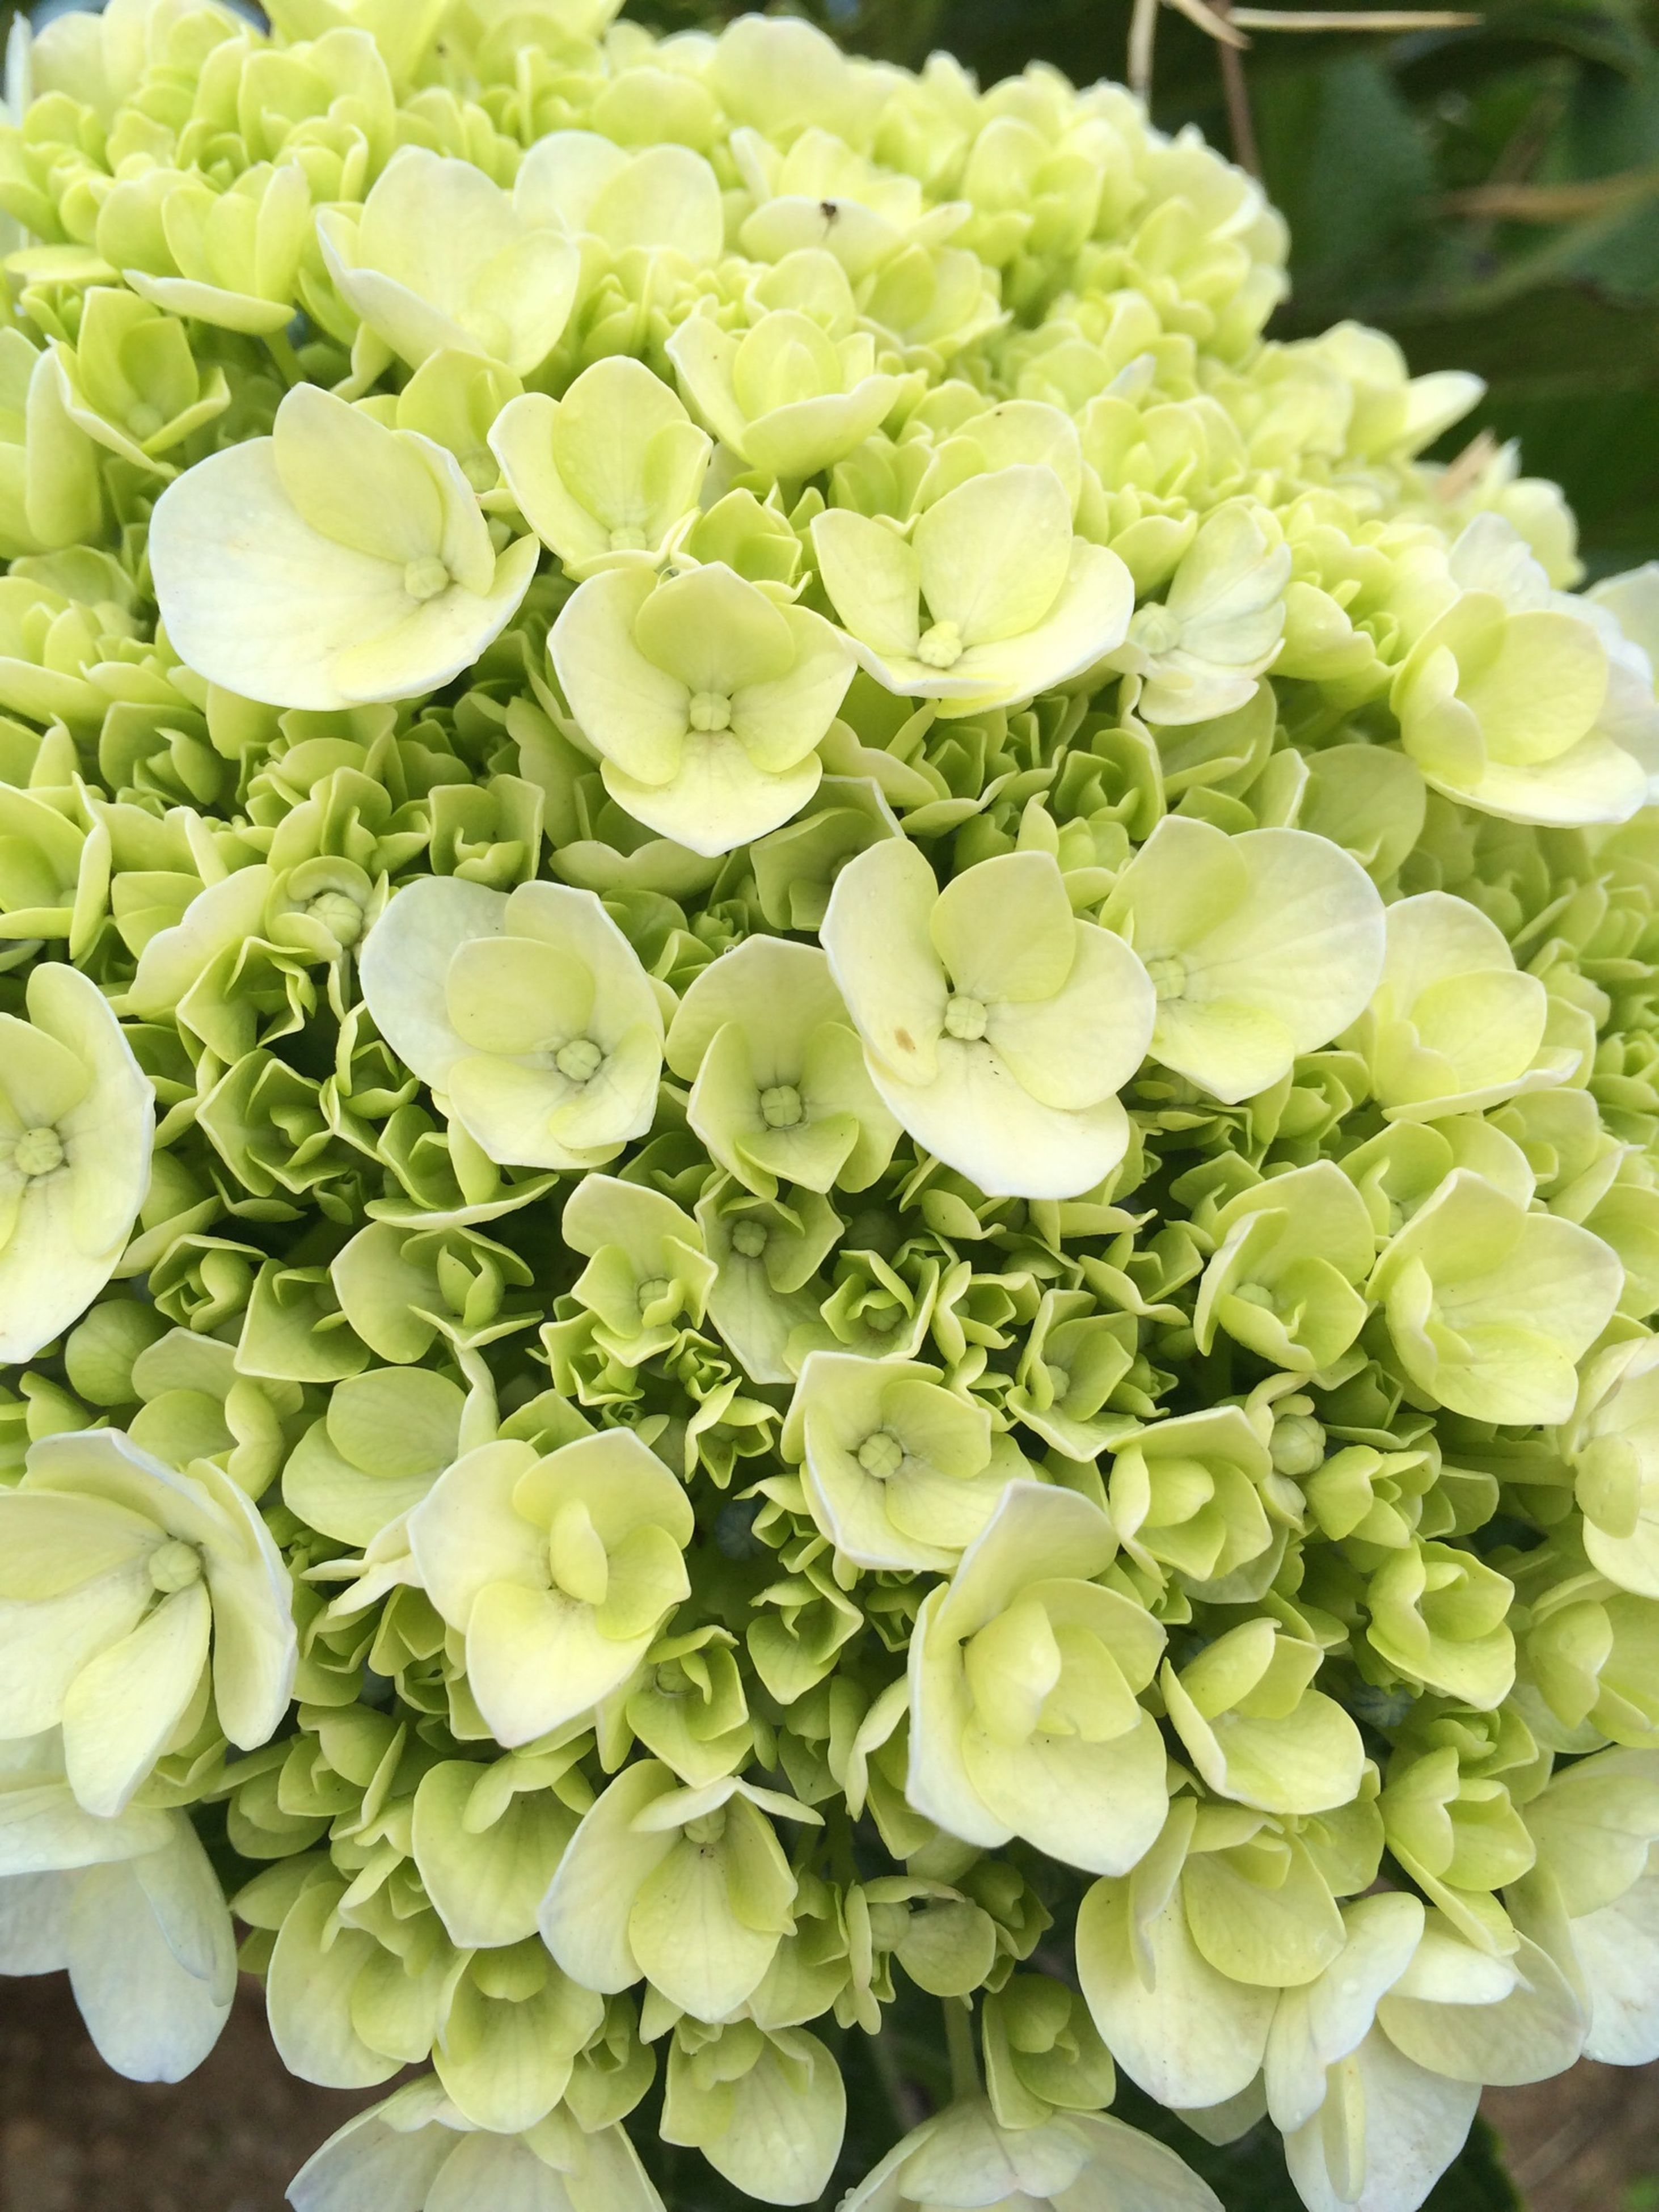 flower, freshness, fragility, petal, growth, flower head, beauty in nature, plant, nature, white color, blooming, close-up, high angle view, leaf, in bloom, green color, botany, bud, no people, focus on foreground